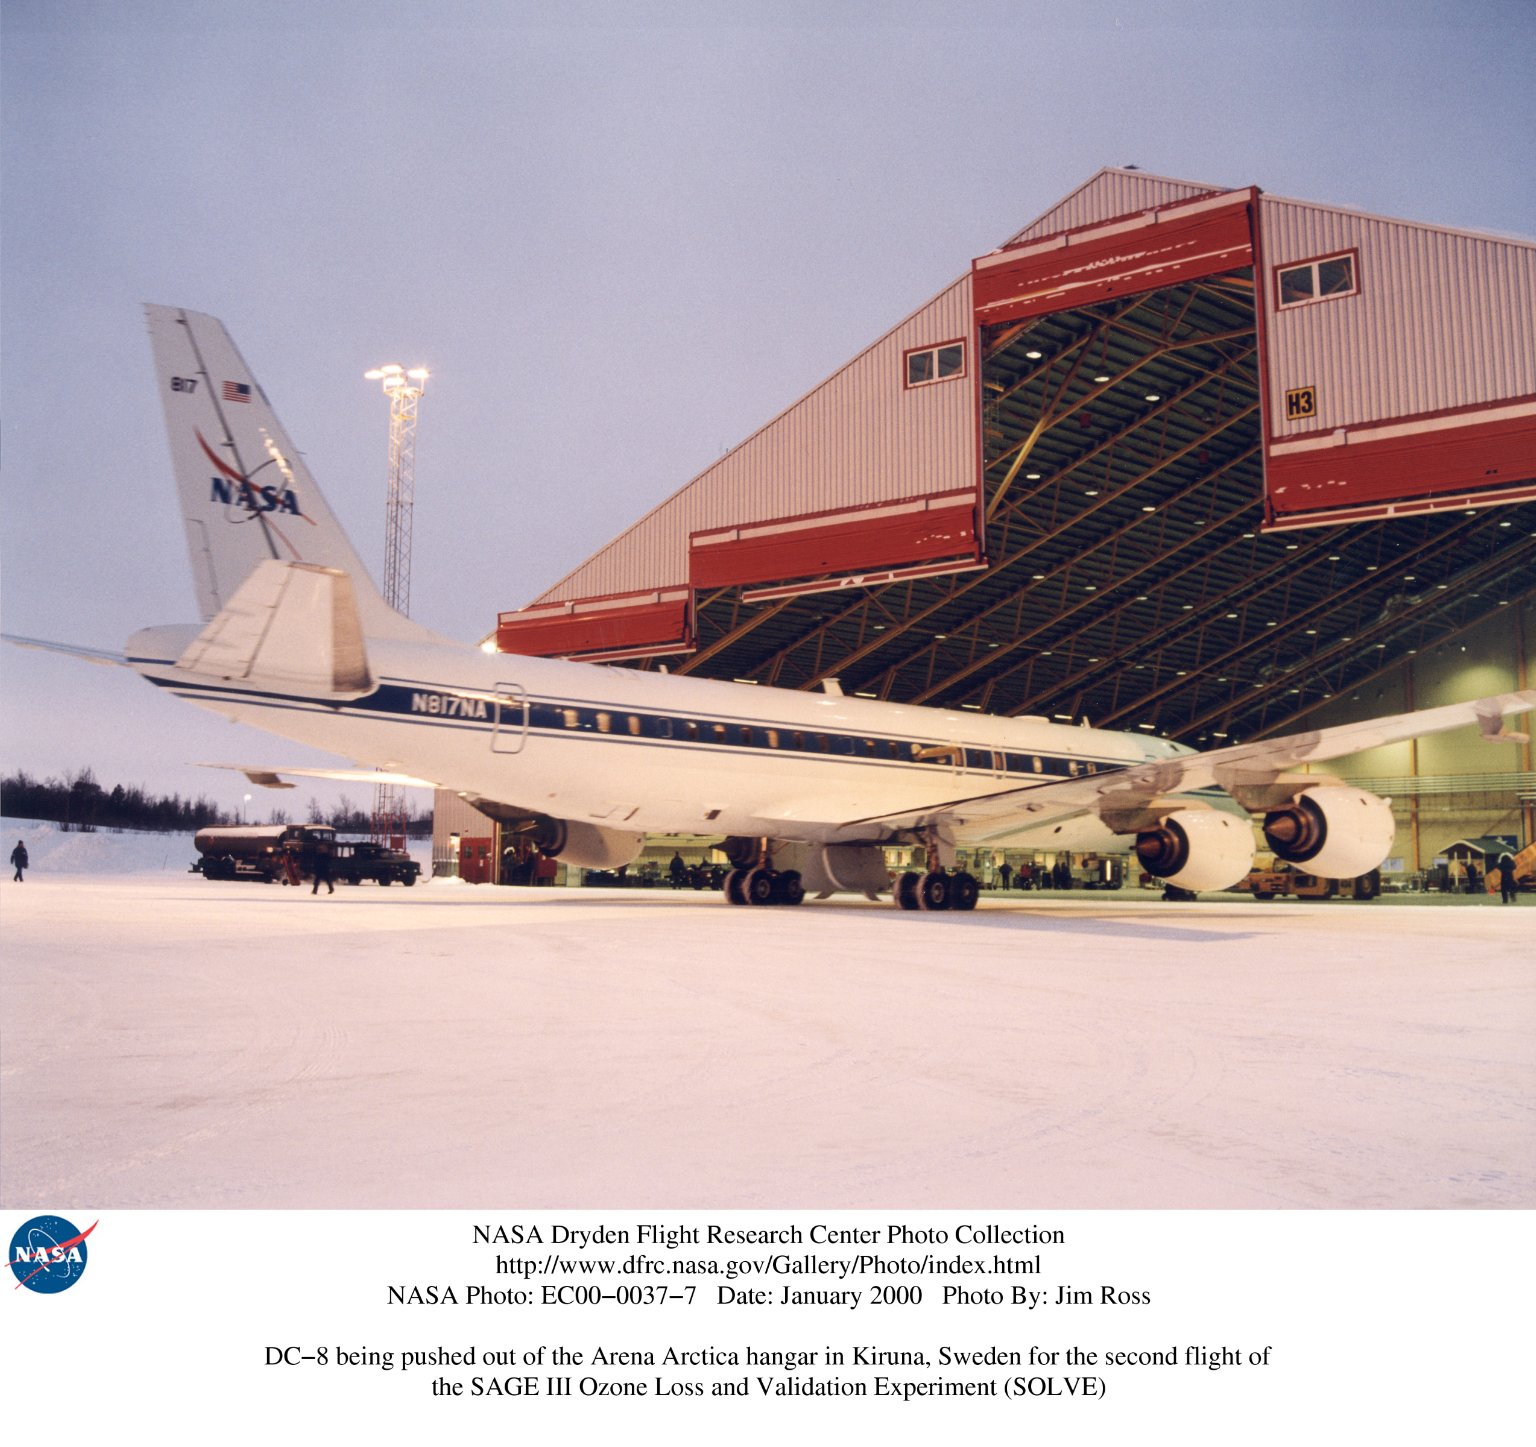 DC-8 being pushed out of the Arena Arctica hangar in Kiruna, Sweden for the second flight of the SAG